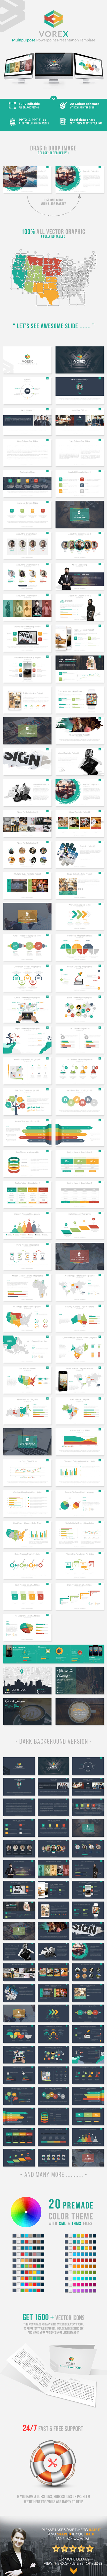 Vorex - Multipurpose Powerpoint Presentation Template - Business PowerPoint Templates